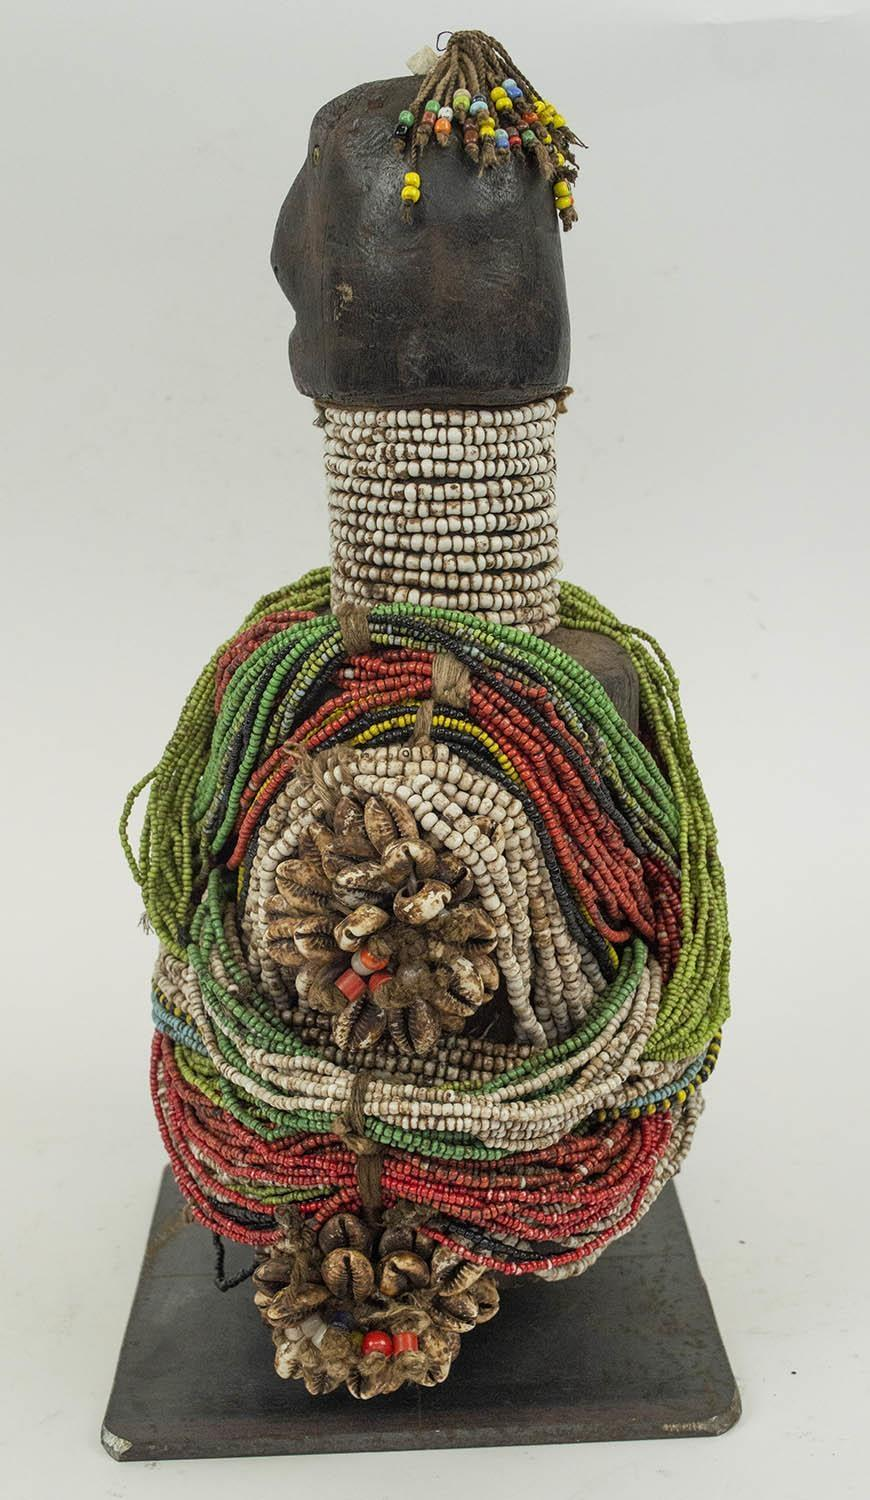 FALI RITUAL DOLL, from Cameroon, adorned with beads and cowrie shells, 40cm H. - Image 2 of 4